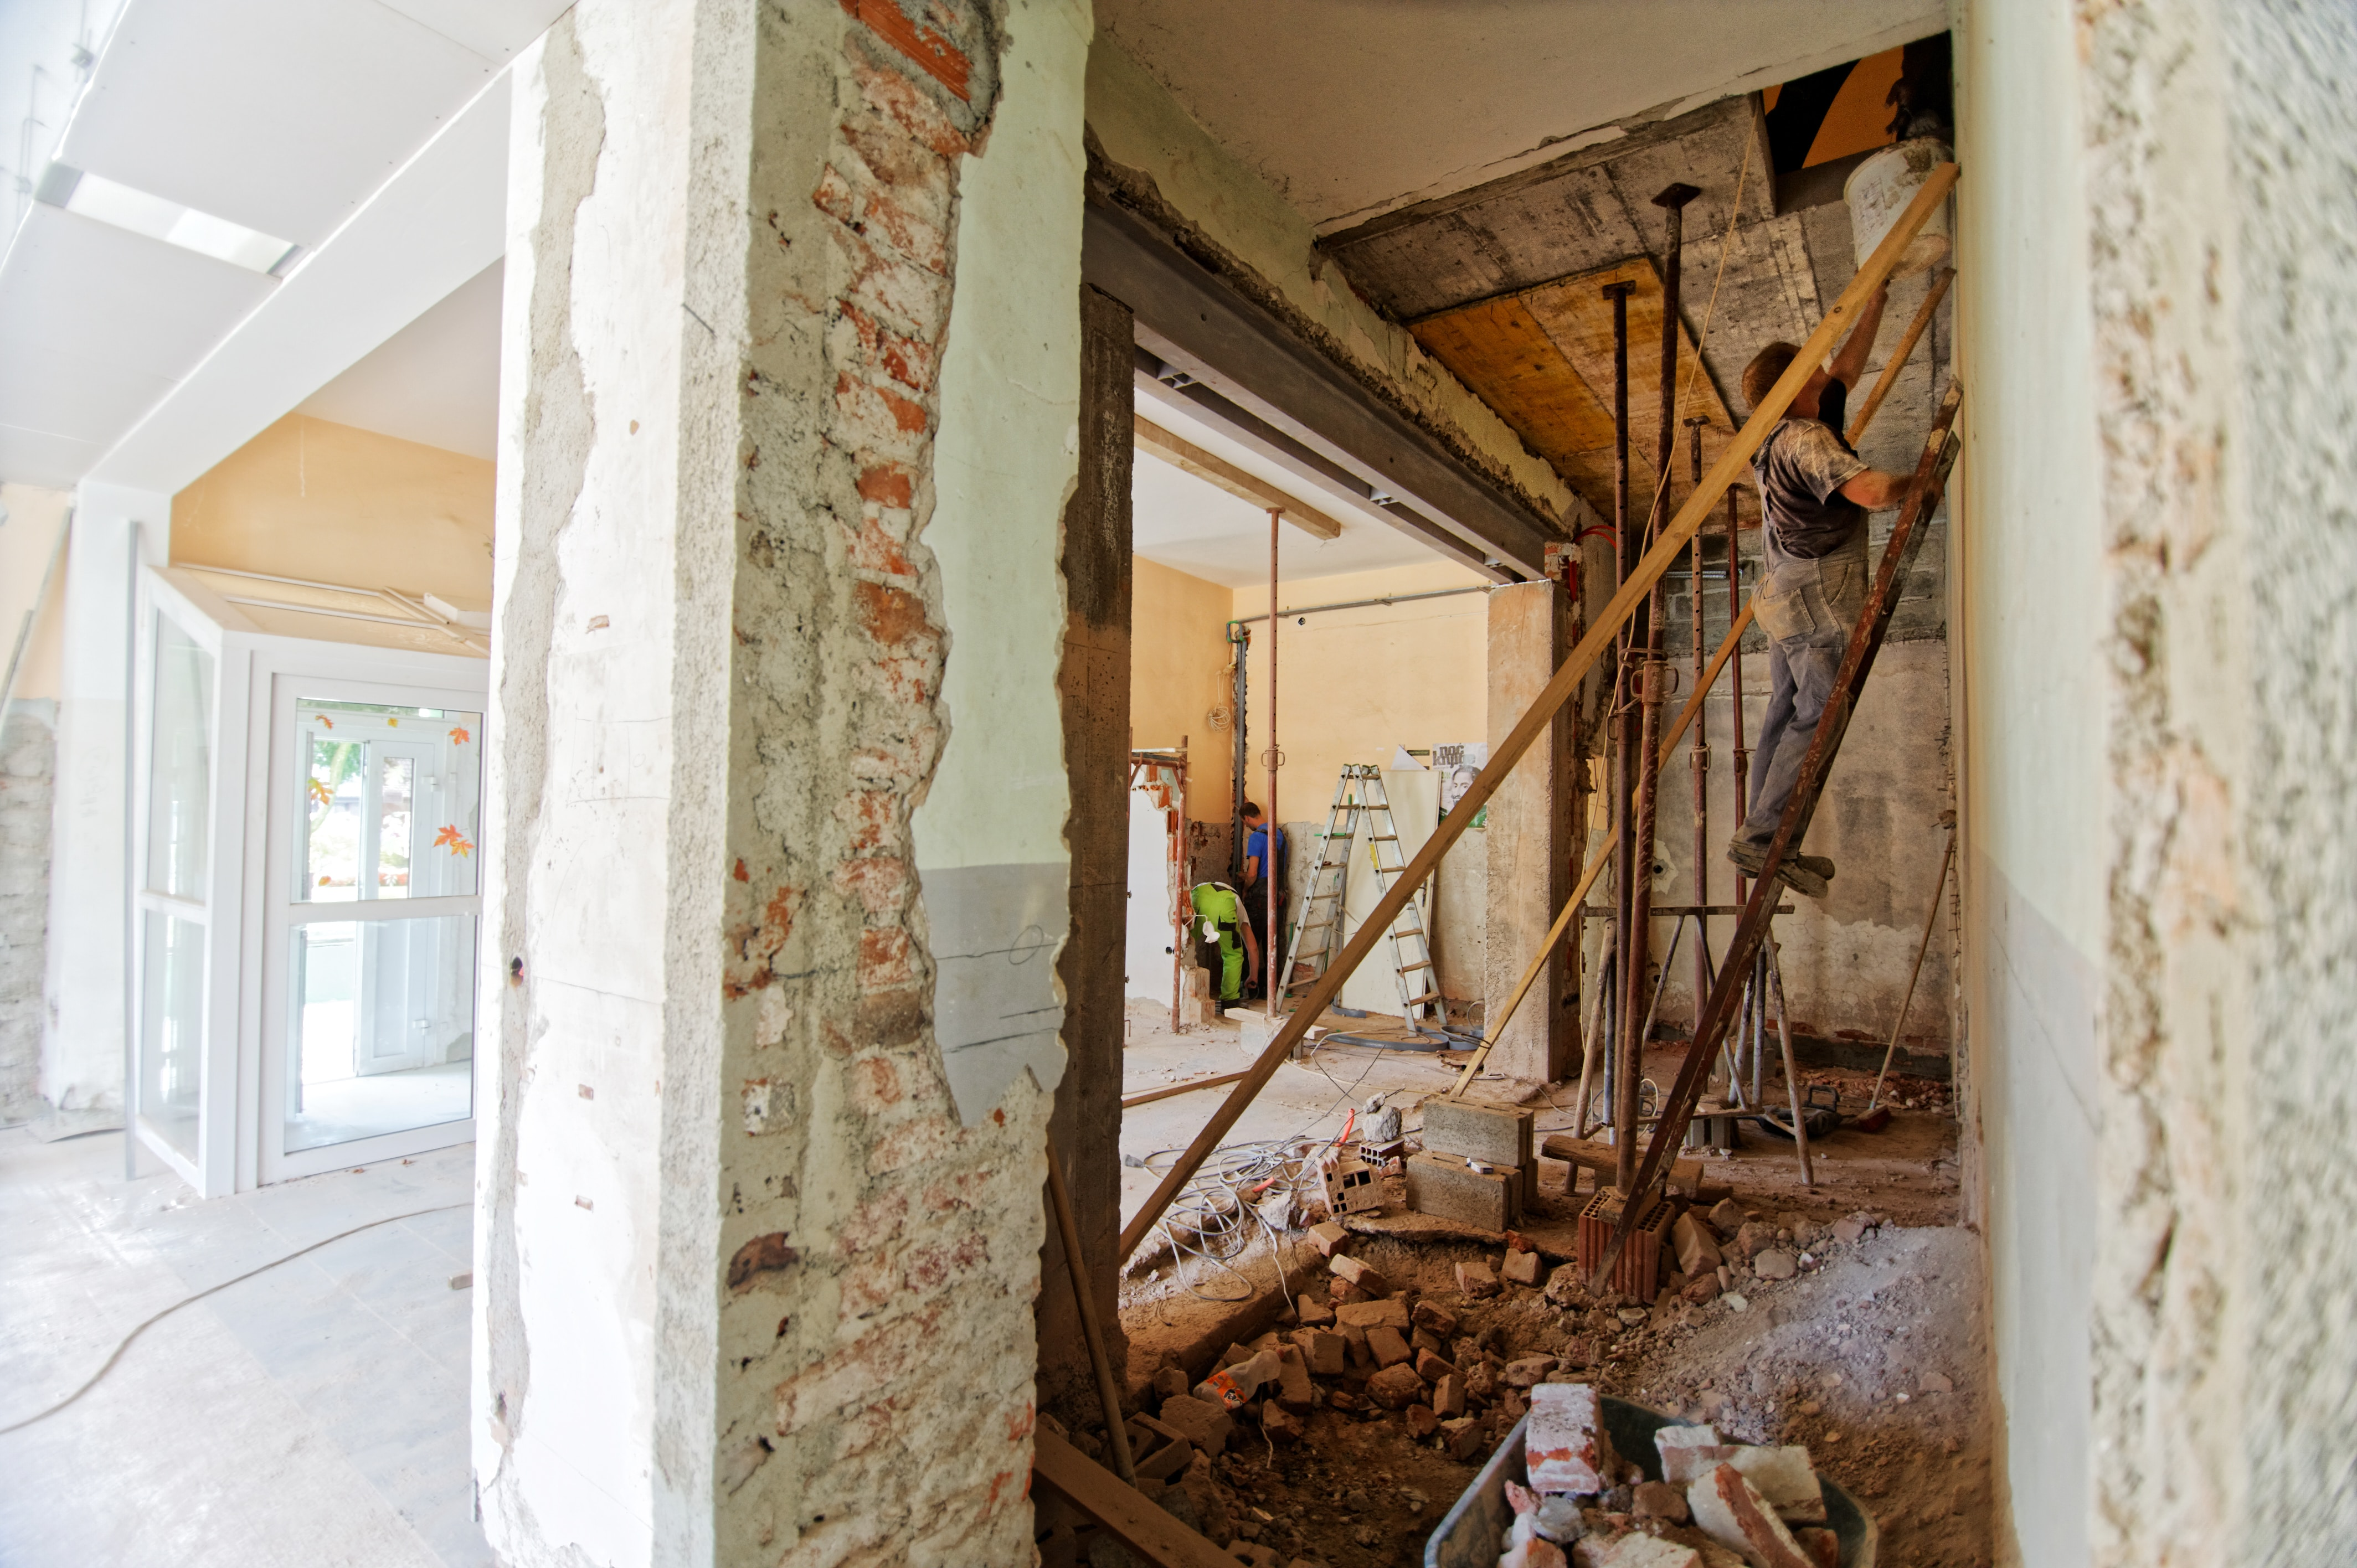 U.S. Home-Flipping Activity Drops As Returns Remain At Near Seven-Year Low: Overall home flips drop 12.9 percent in third quarter of 2019 after unusually active spring; percent of flips purchased with all-cash at two year high